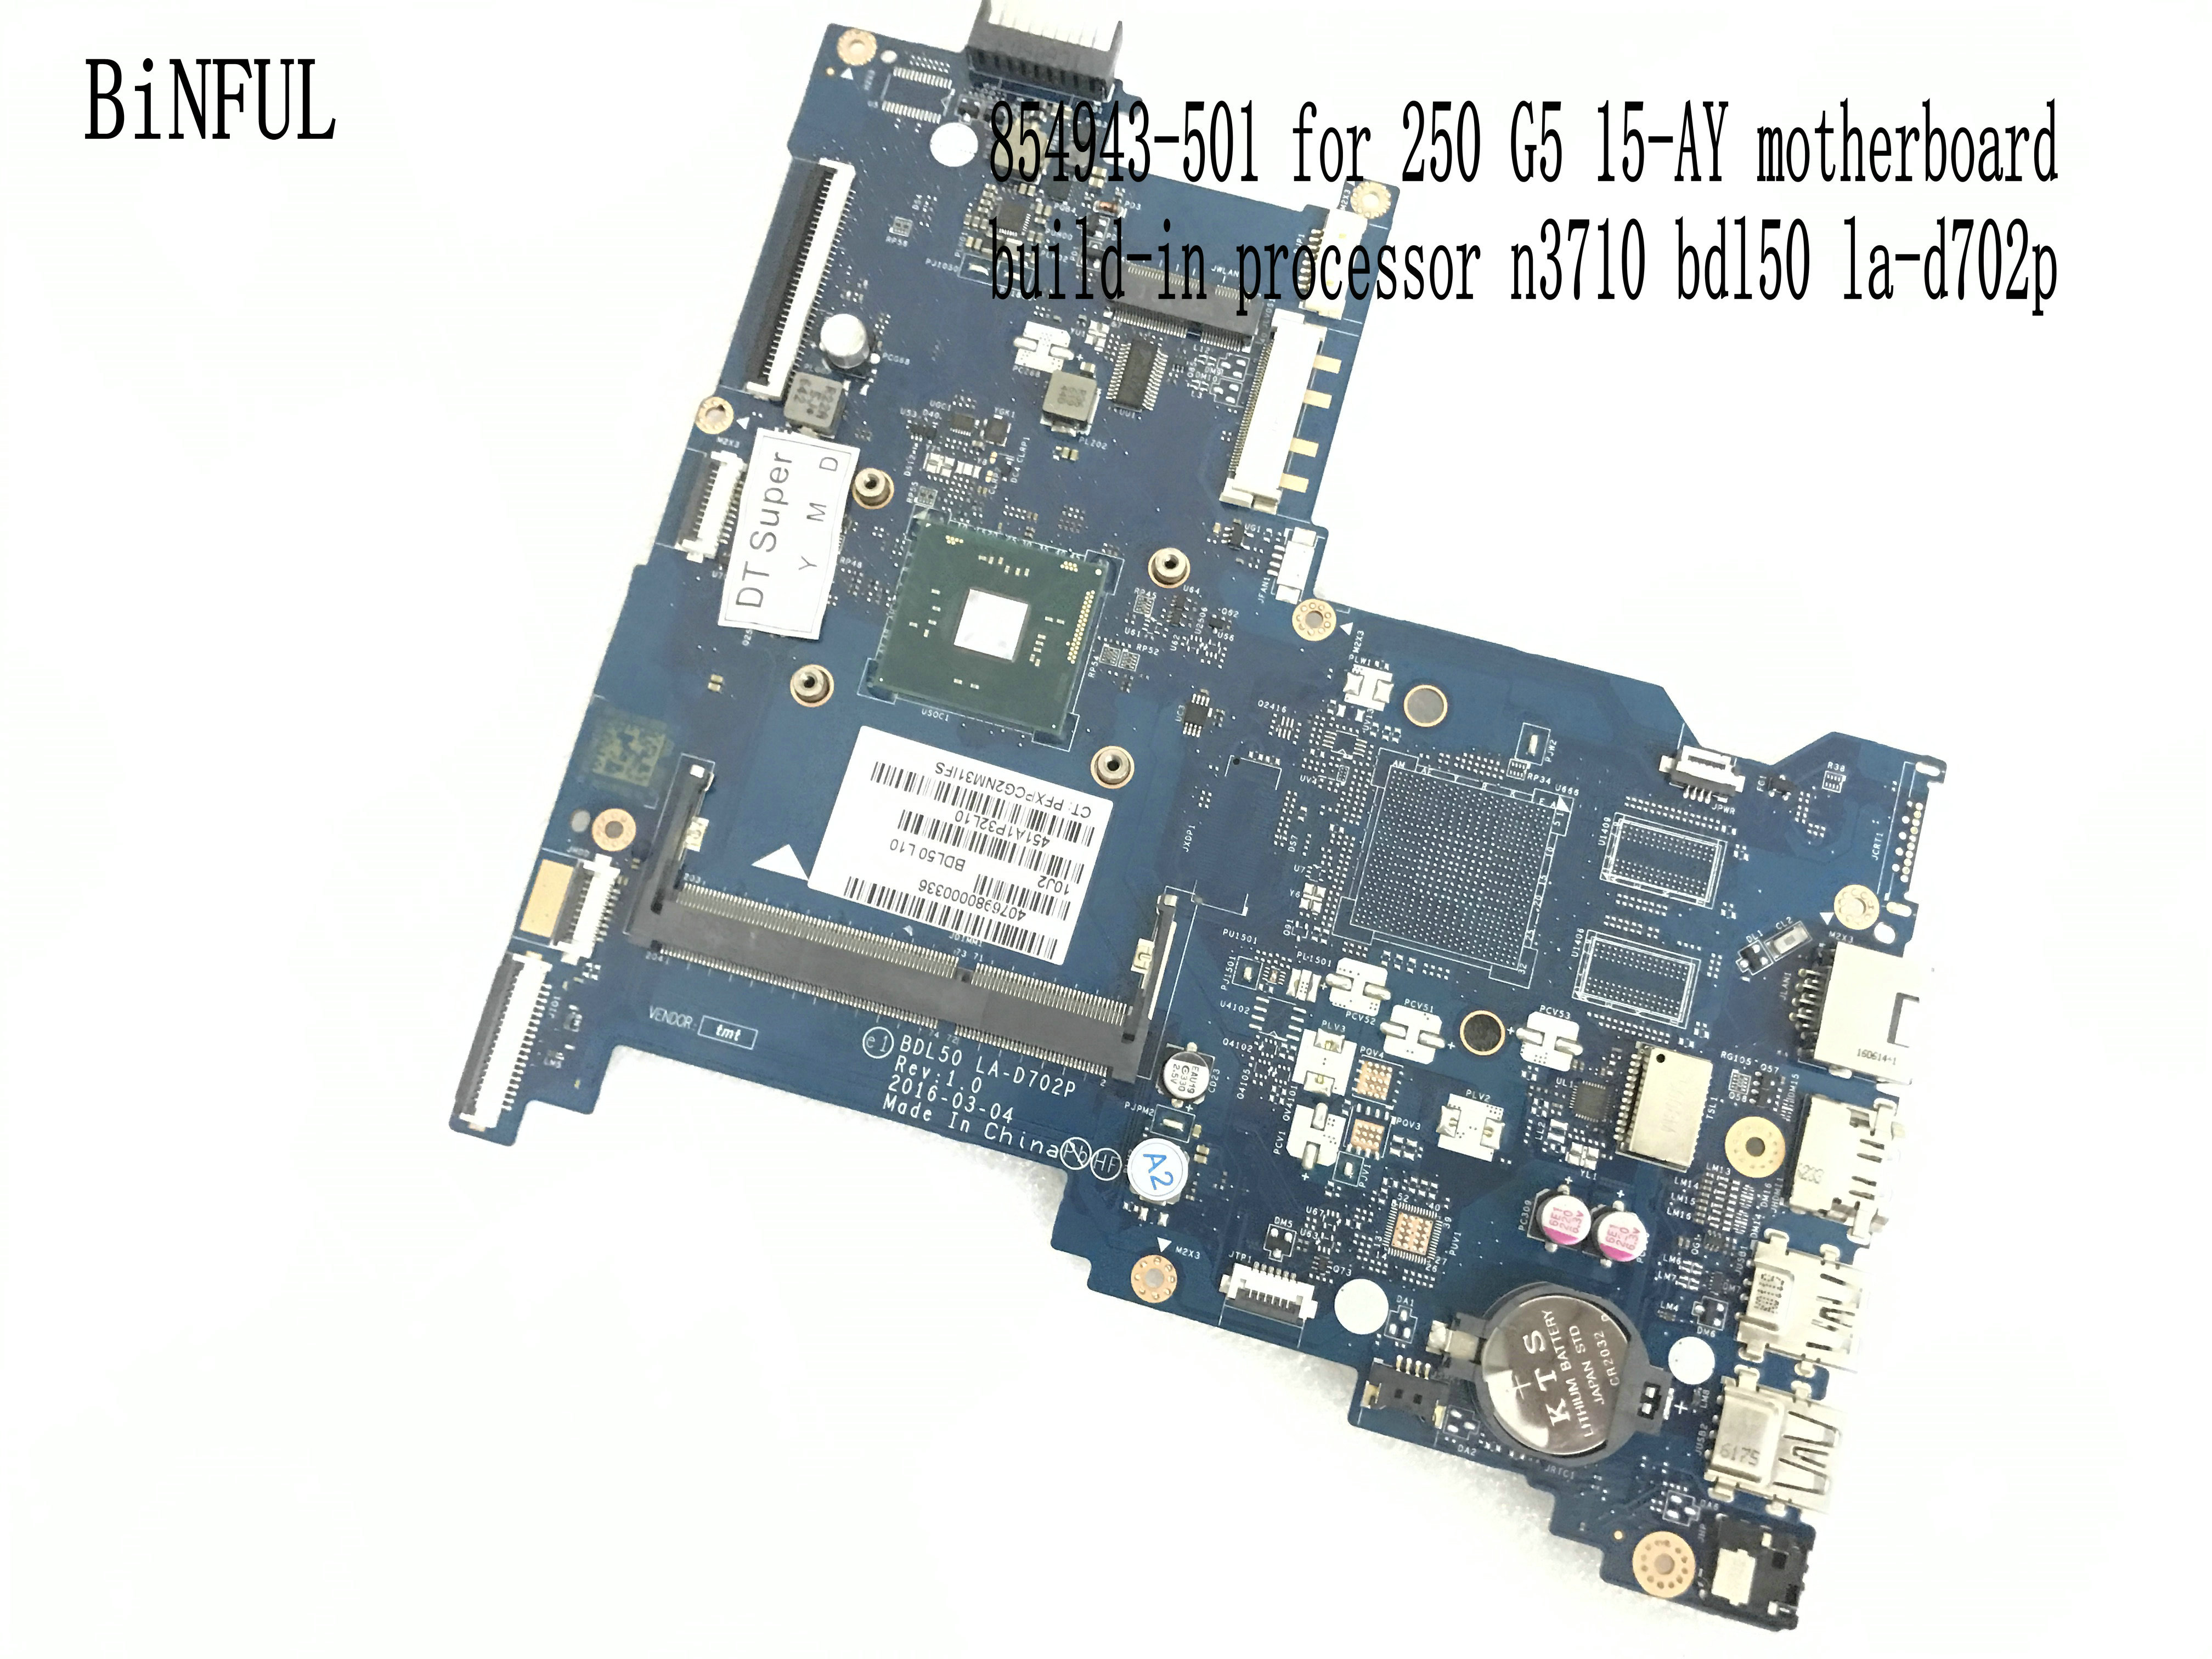 BiNFUL STOCK NEW ITEM  BDL50 LA-D702P LAPTOP MOTHERBOARD FOR HP 250 G5 / 15-AY NOTEBOOK BUILD-IN PROCESSOR N3710